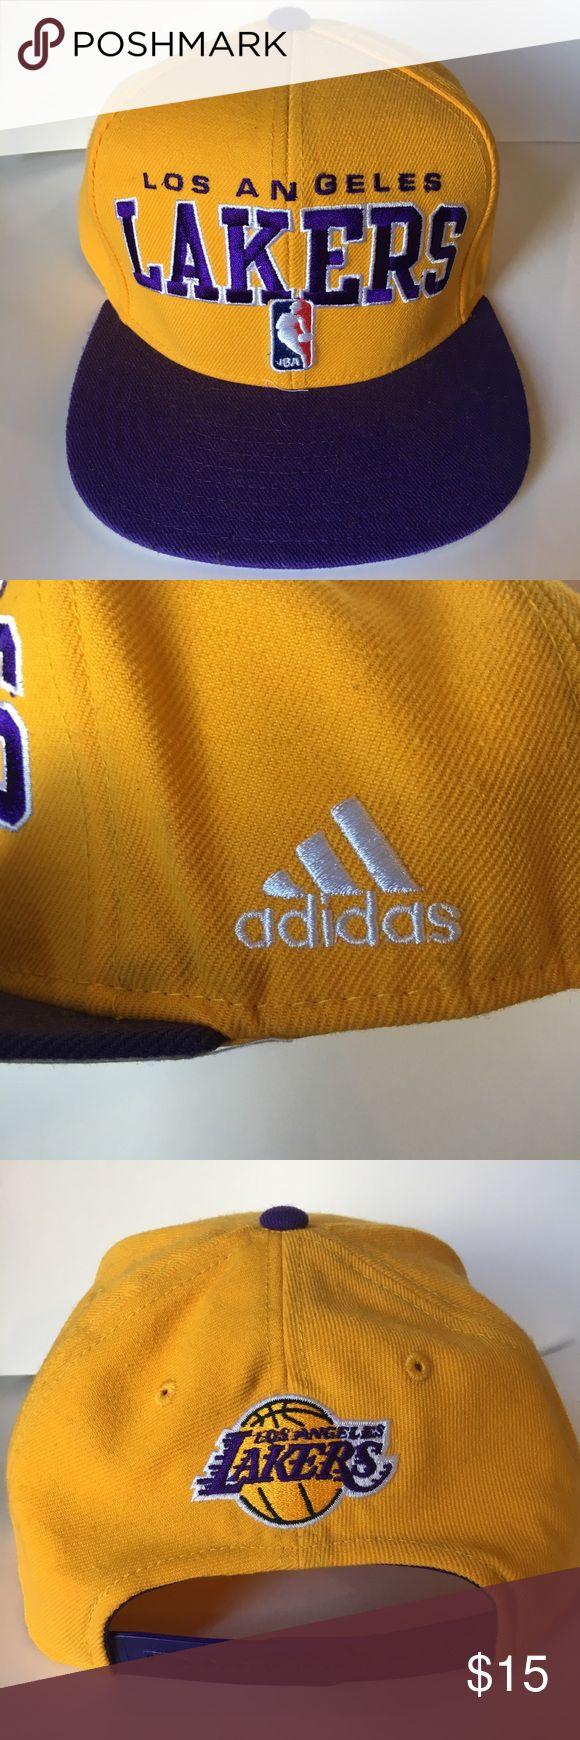 CLOSET CLEAR-OUT NBA LA Lakers Hat NBA Los Angeles Lakers Hat in perfect condition. Adjustable strap. Unisex. #K237 Adidas Accessories Hats